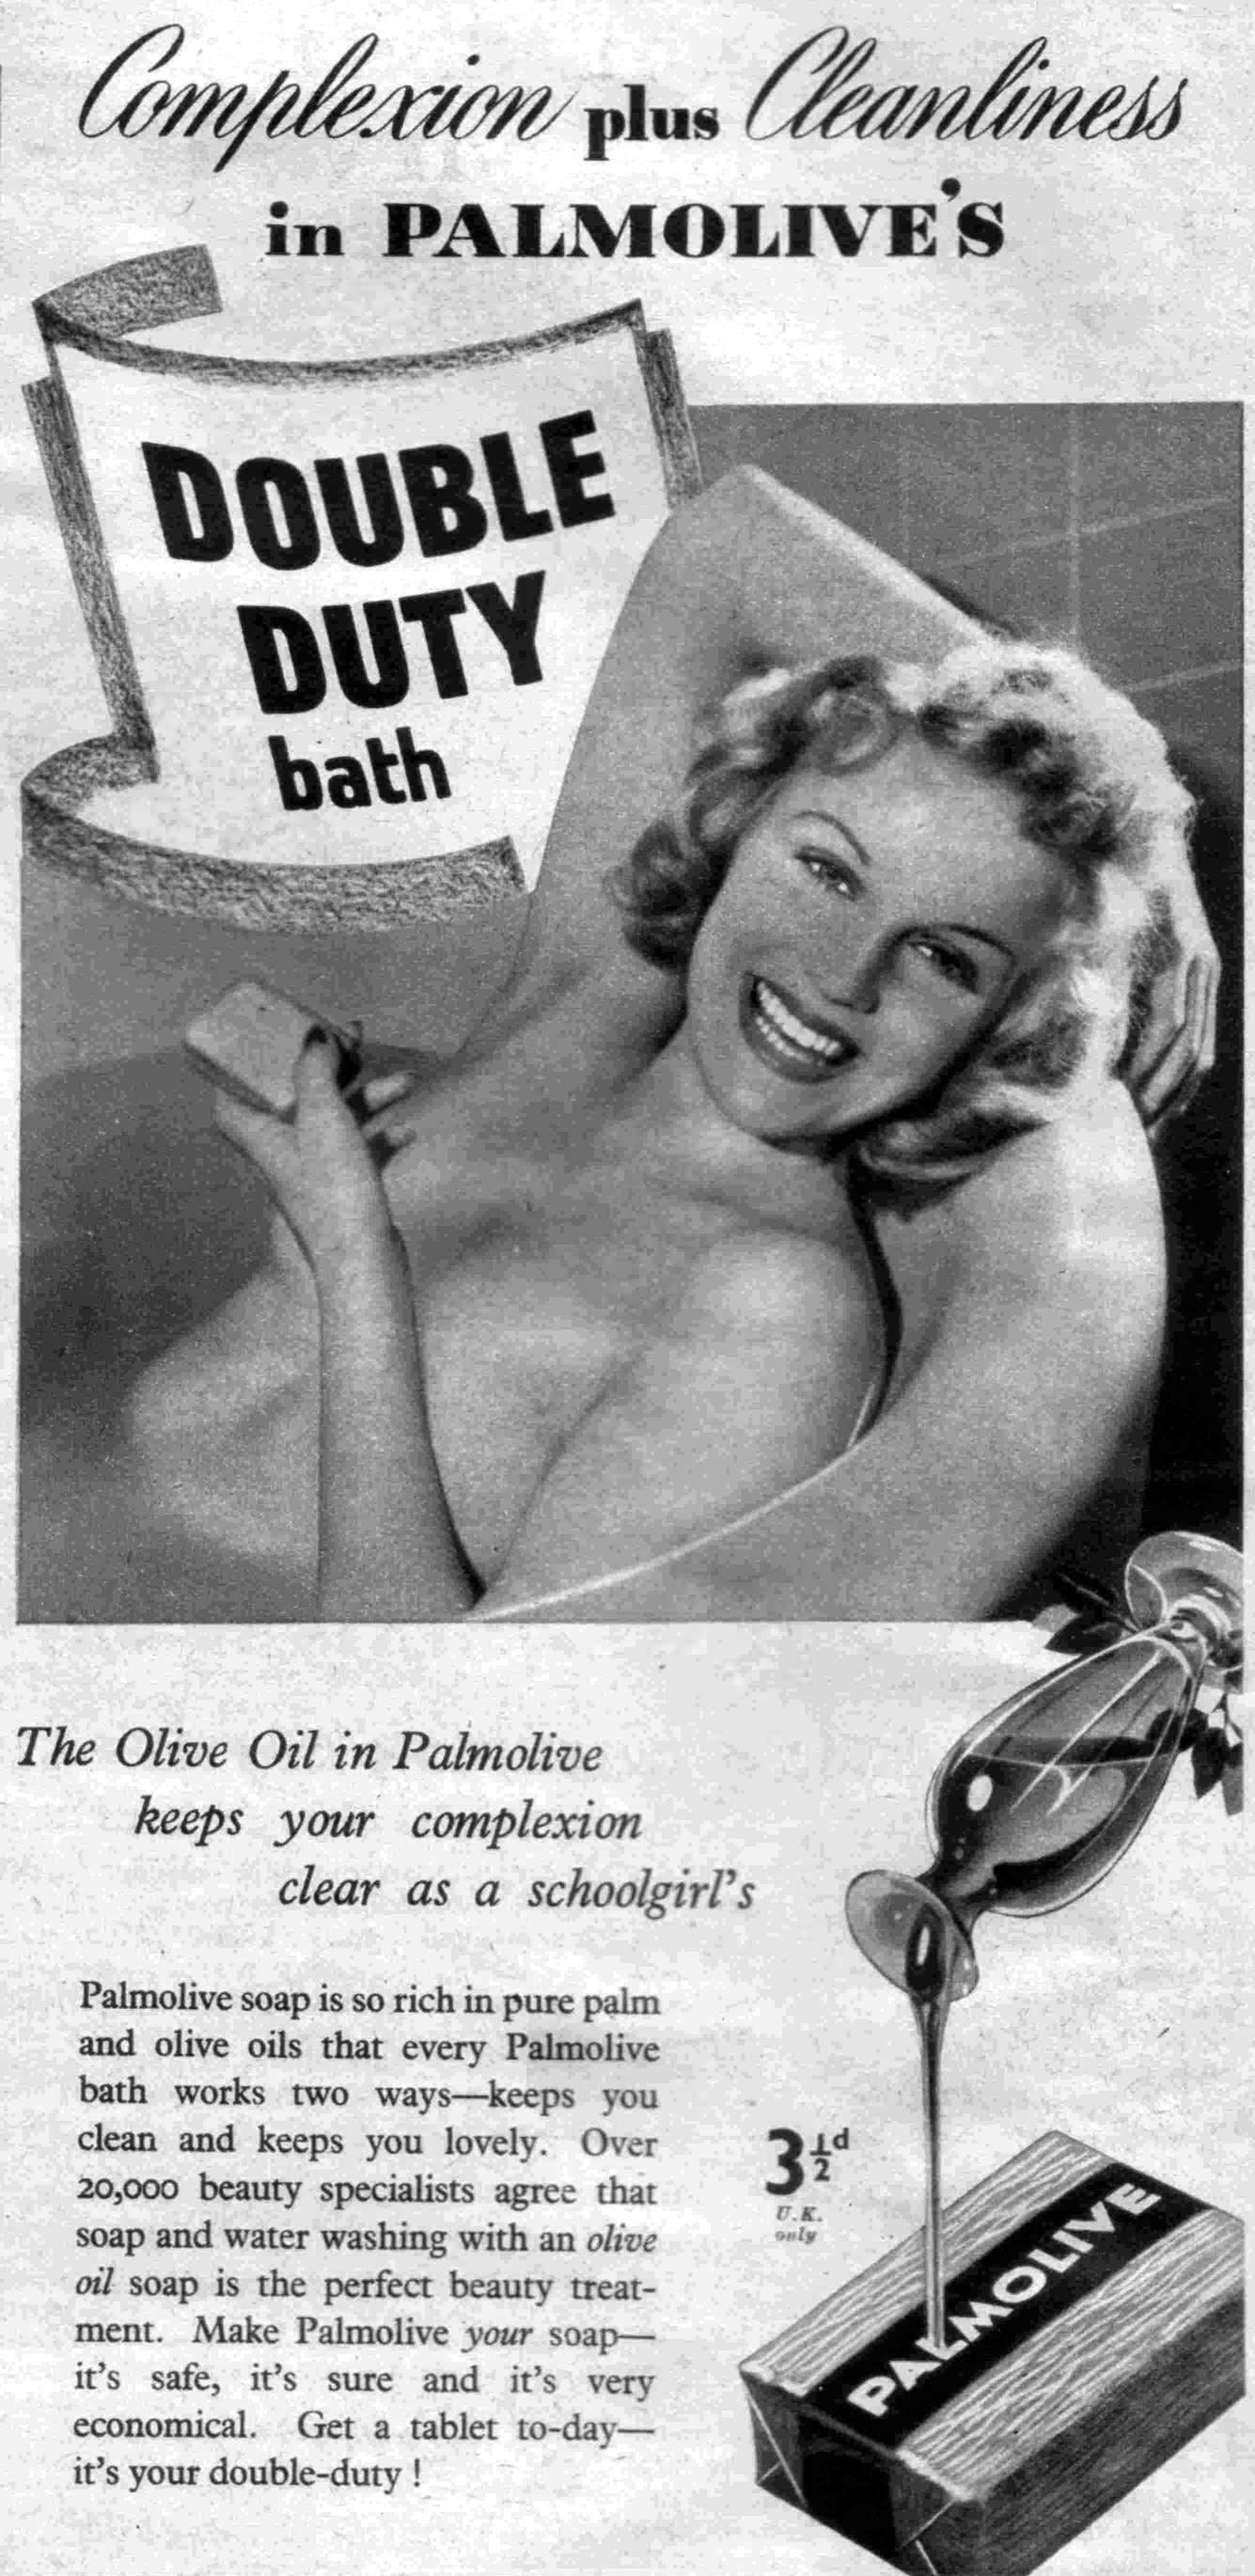 palmolive (Picture Post_ April 20th 1940)a